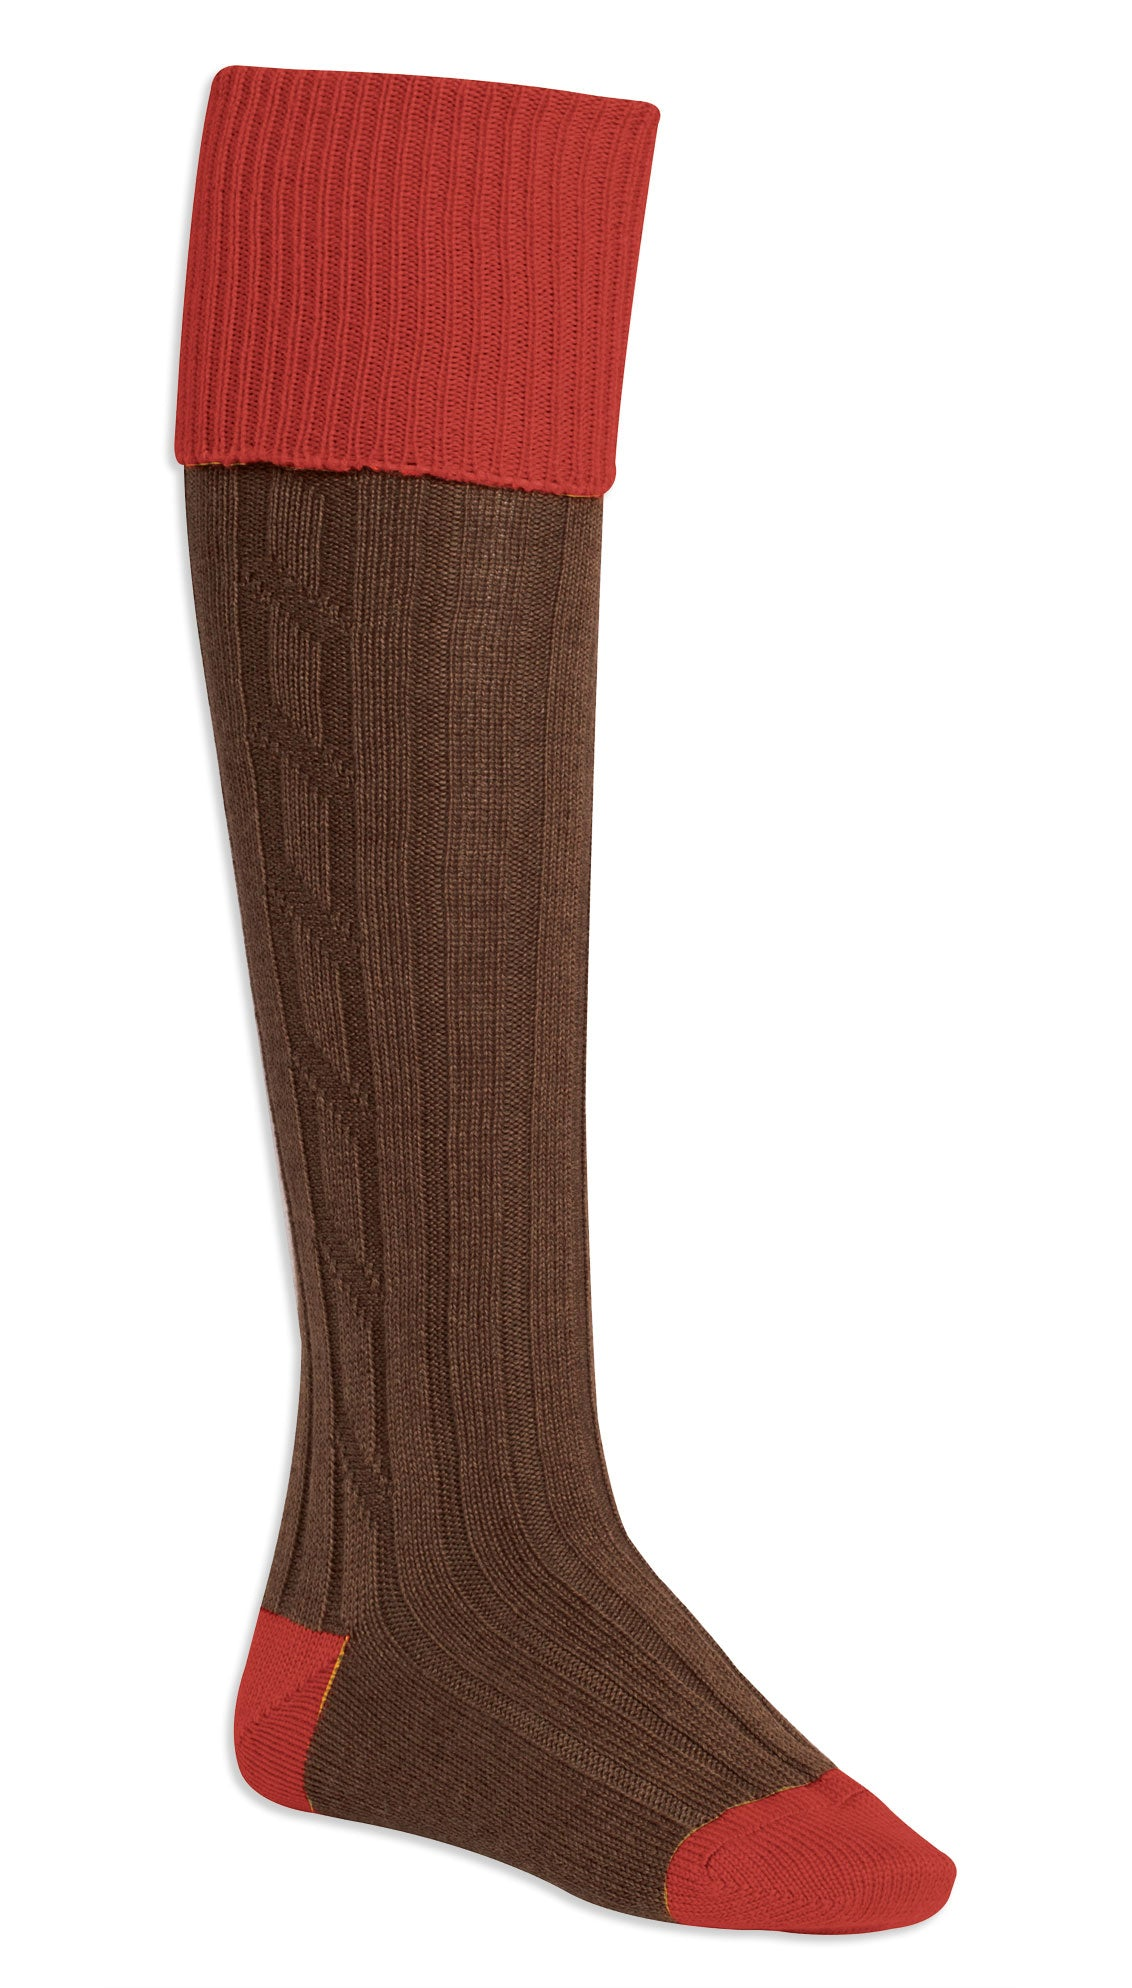 red and brown Contrast Heel & Toe Shooting Sock by Alan Paine